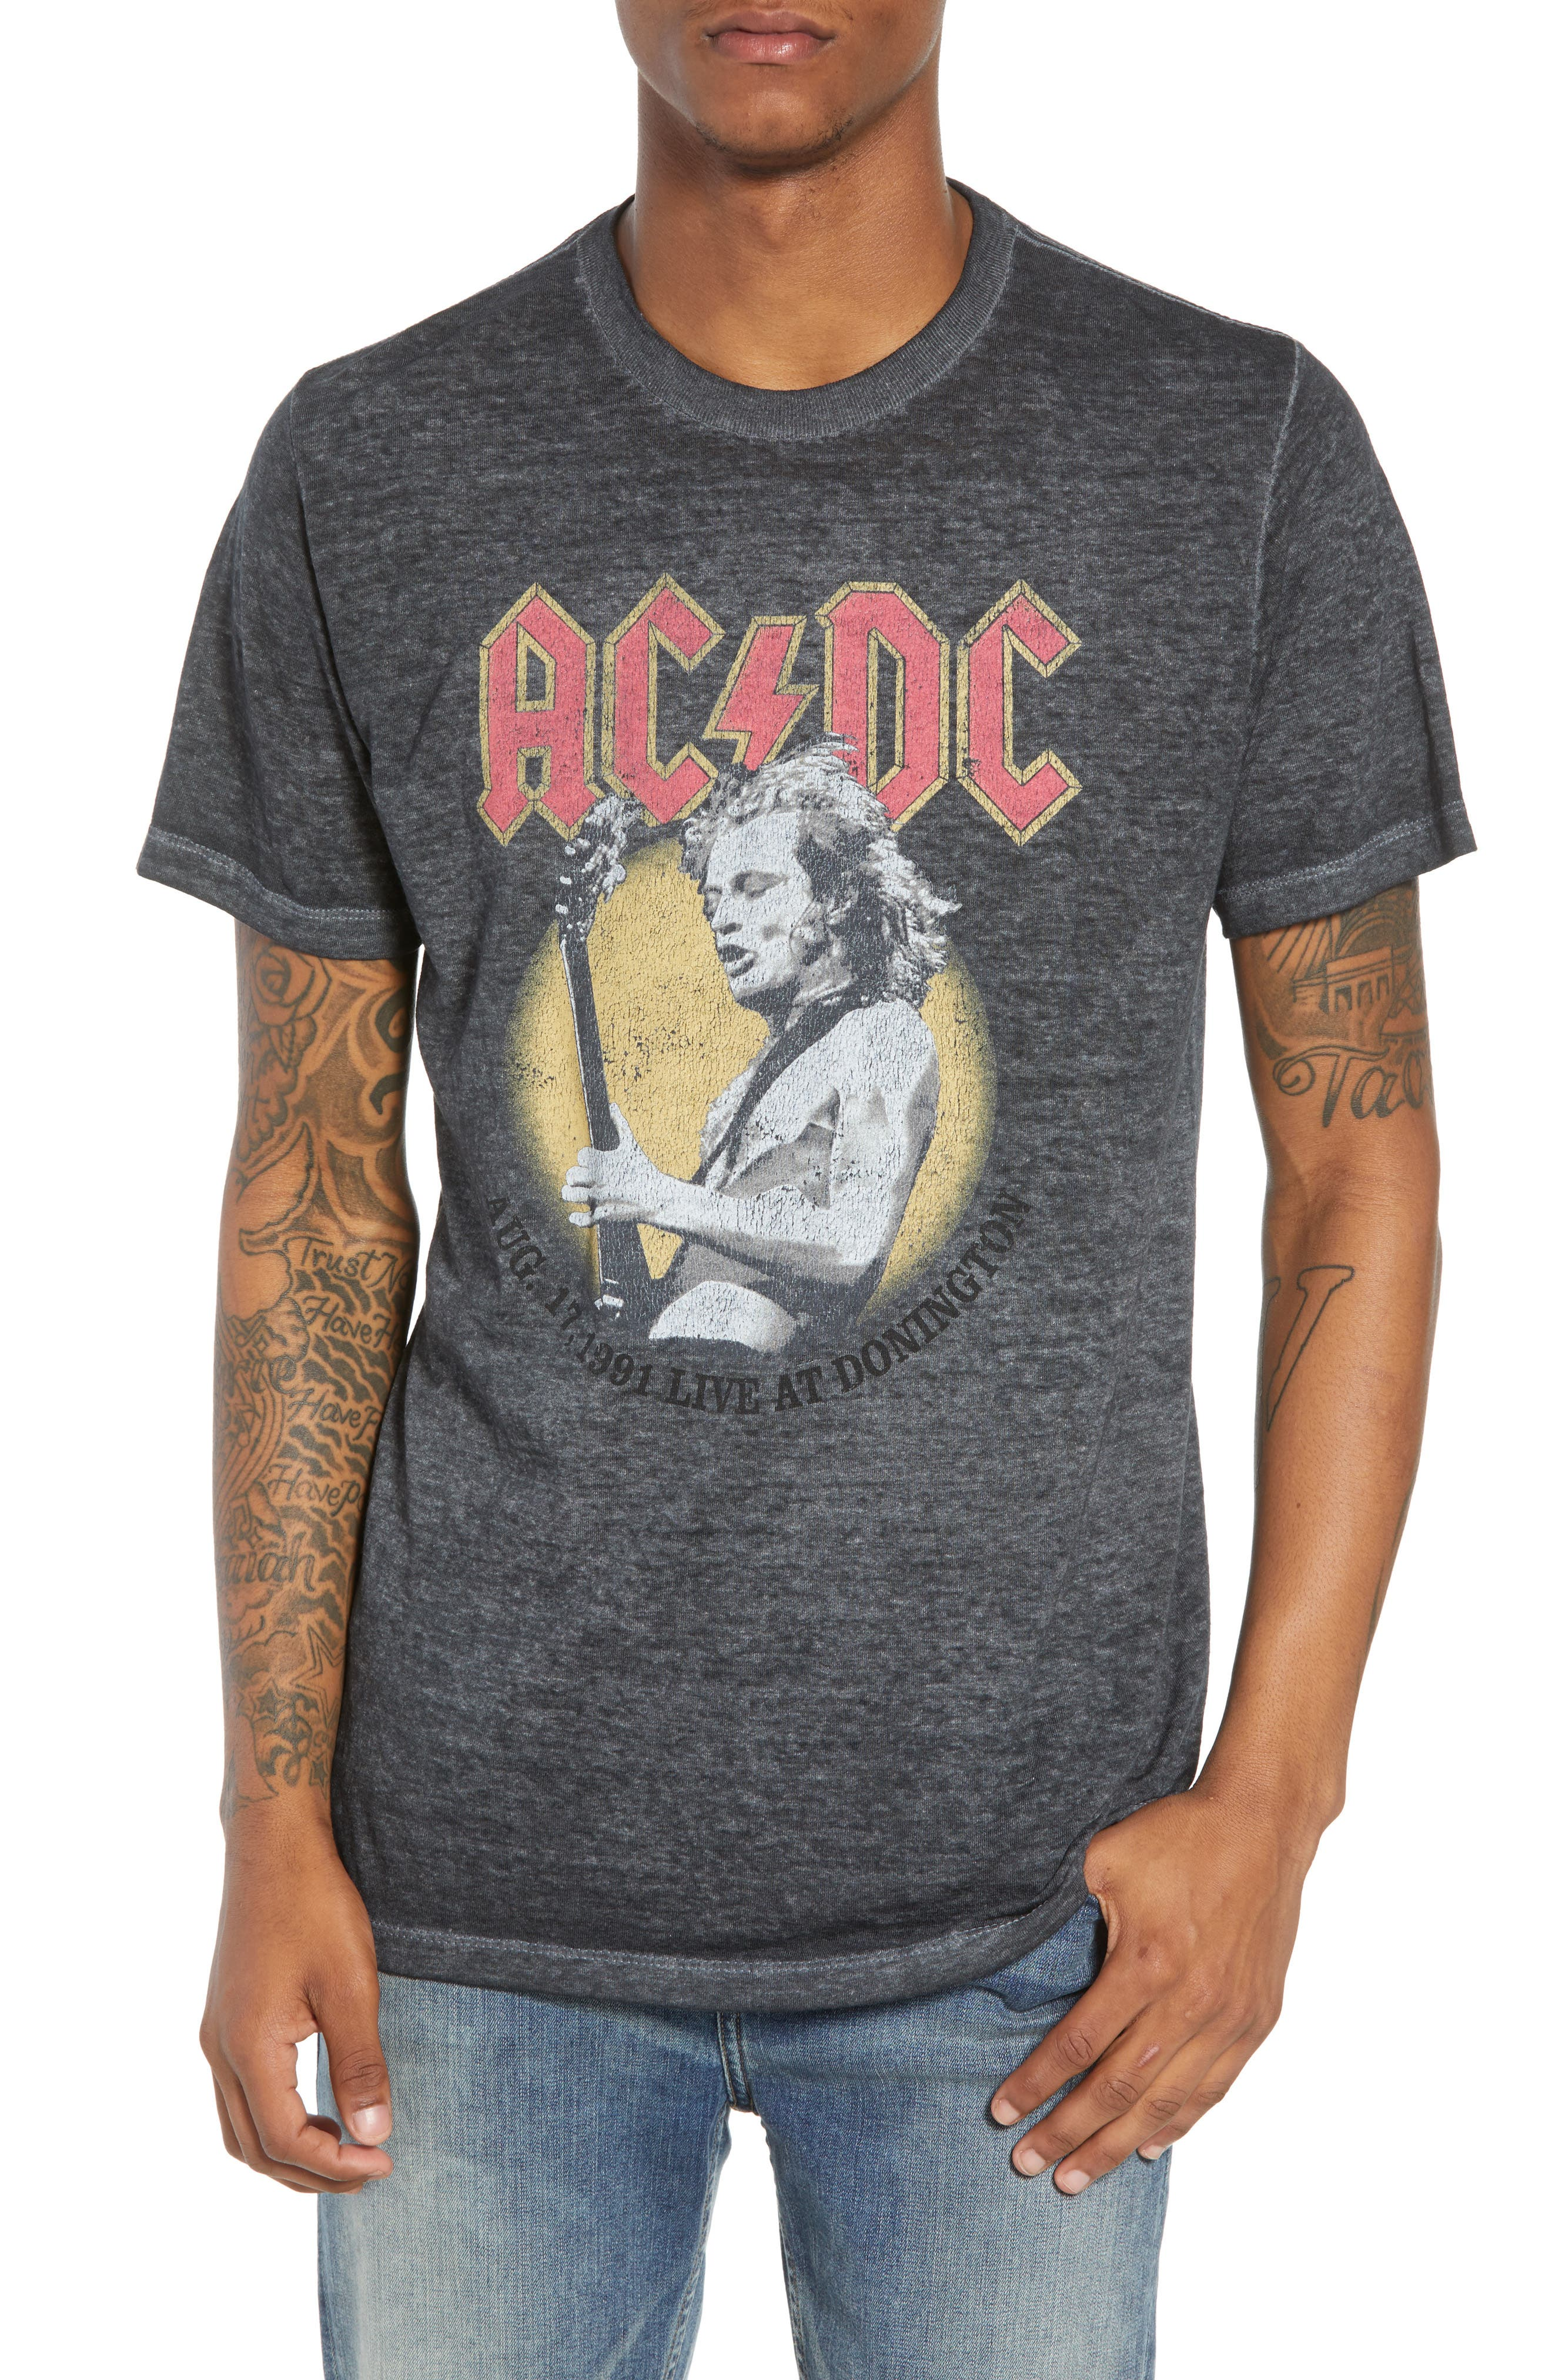 AC/DC Live at The Donington T-Shirt,                             Main thumbnail 1, color,                             030